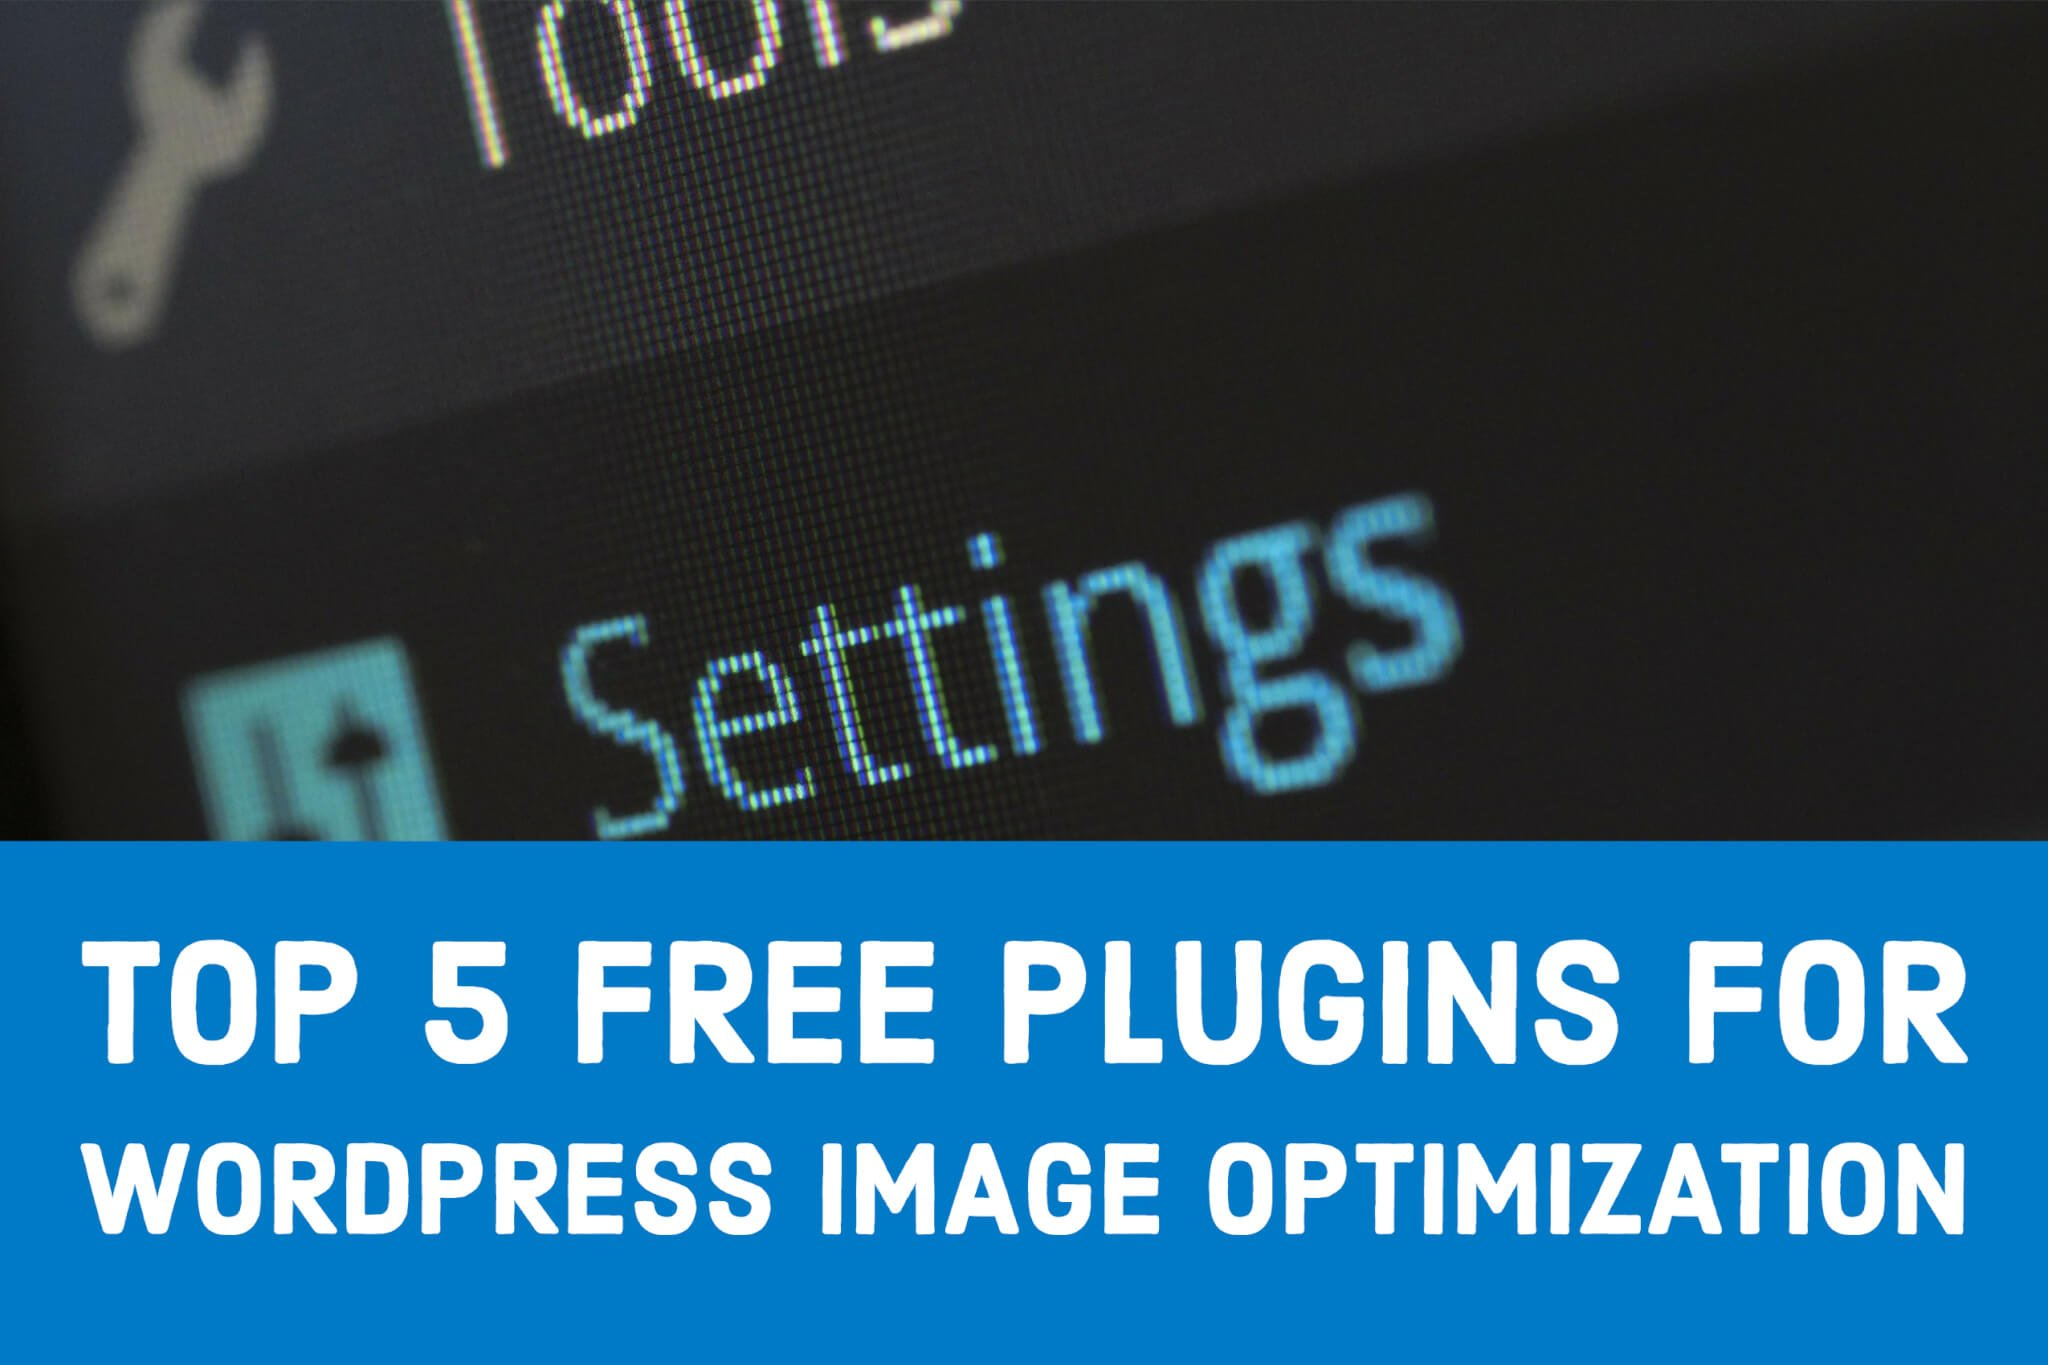 Top 5 free Plugins for WordPress Image Optimization